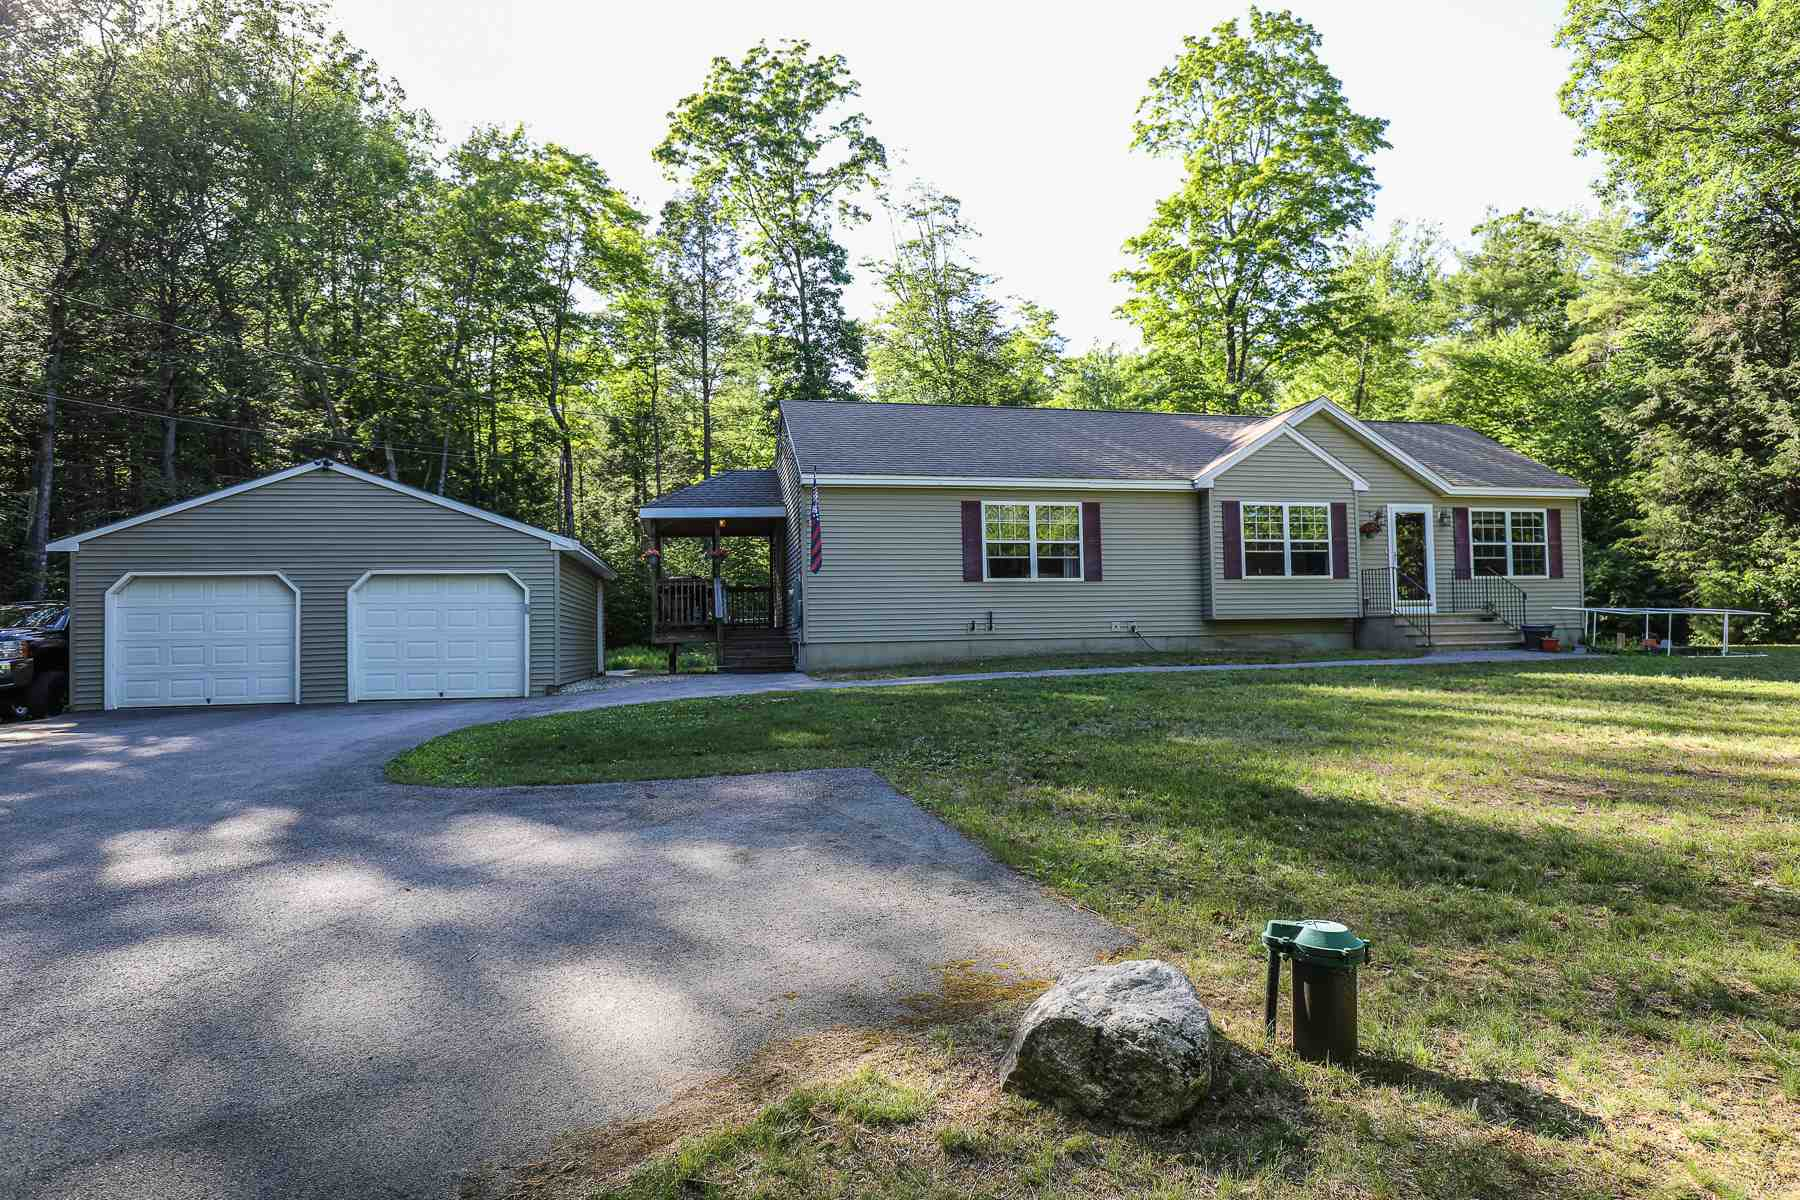 Photo of 385 Raymond Road Chester NH 03036